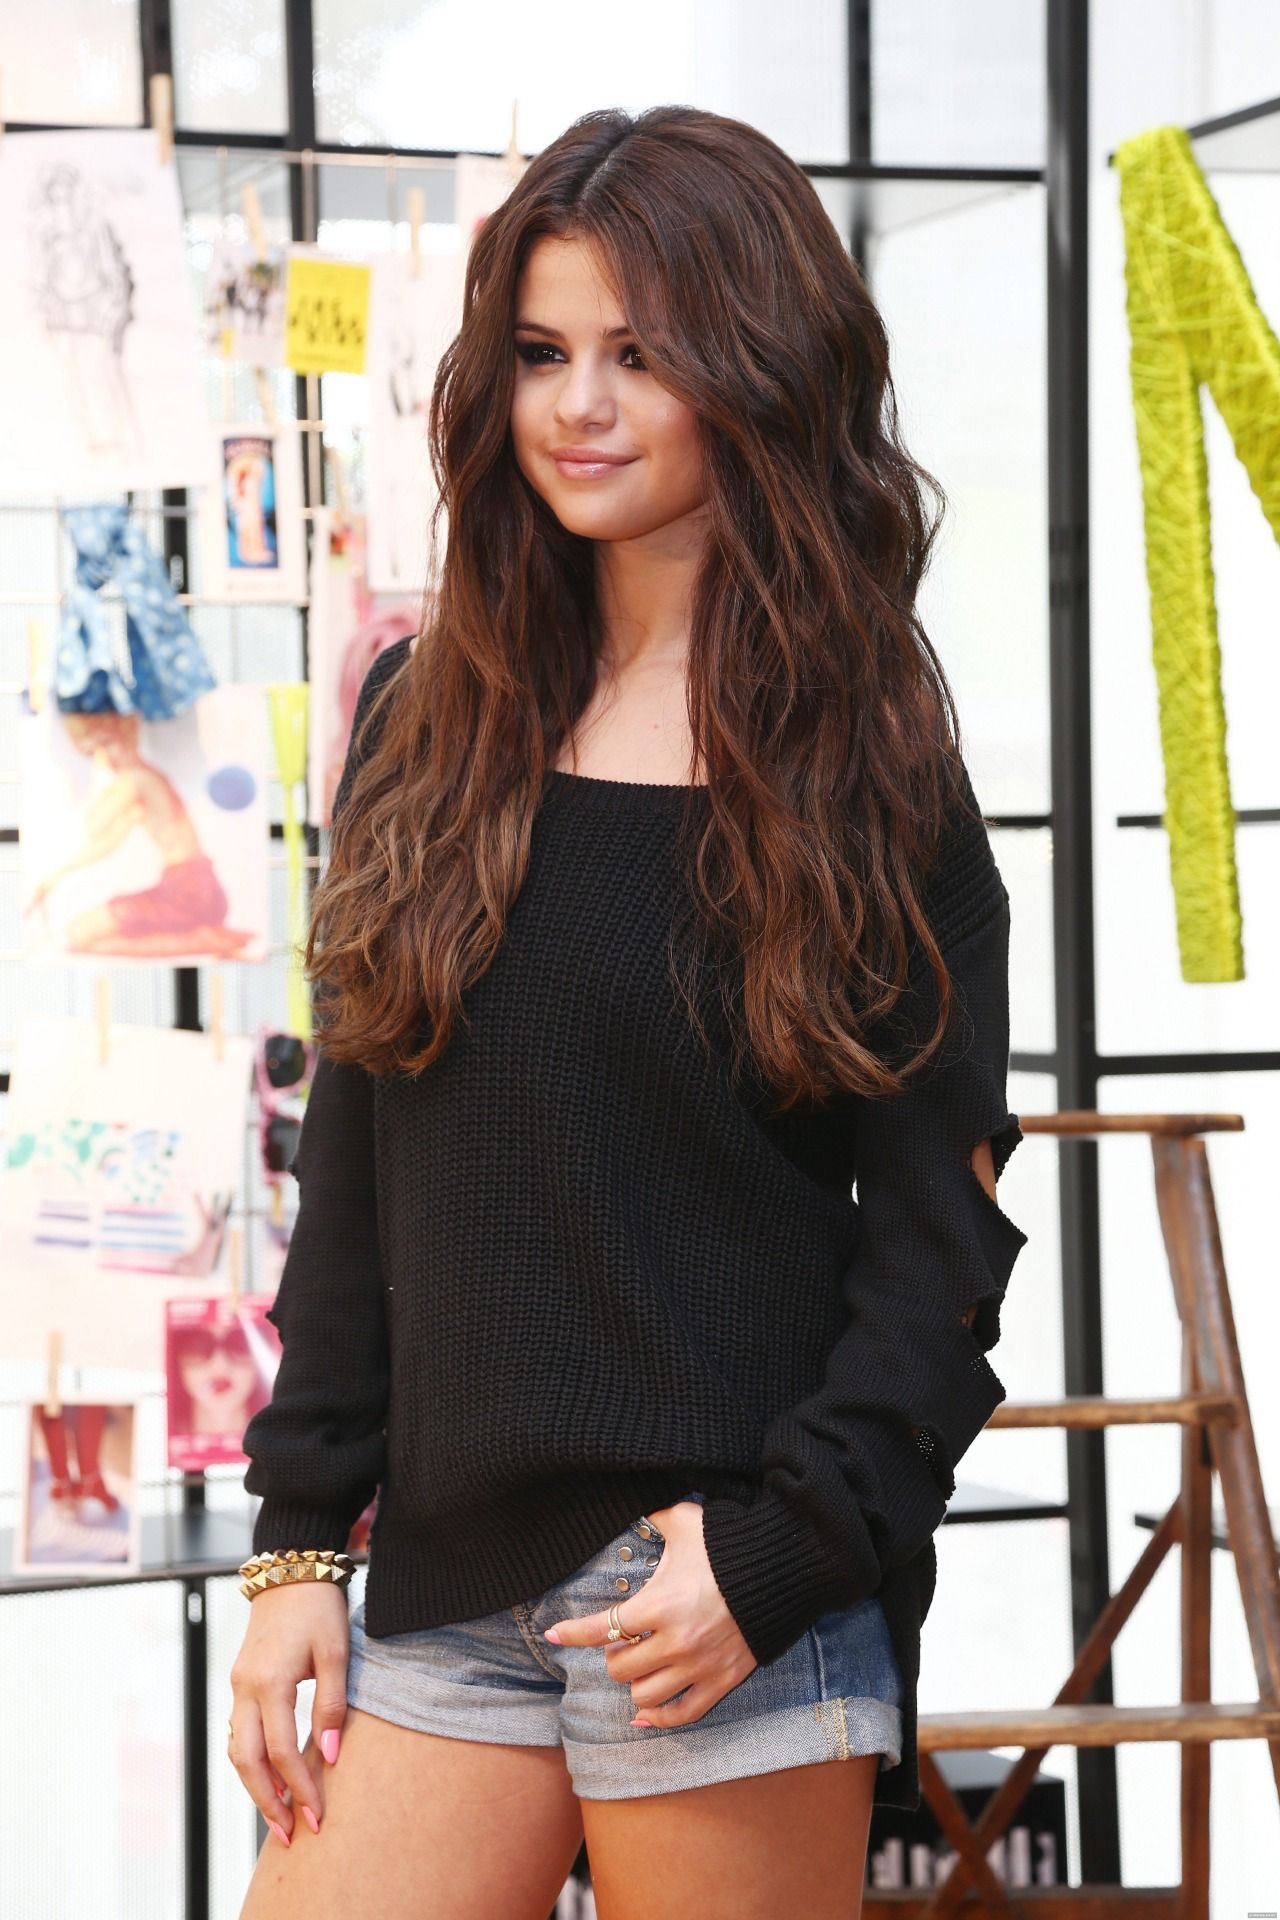 Selena Gomez Fashion Inspiration And Style For Women Selena Gomez Outfits Selena Gomez Selena Gomez Style